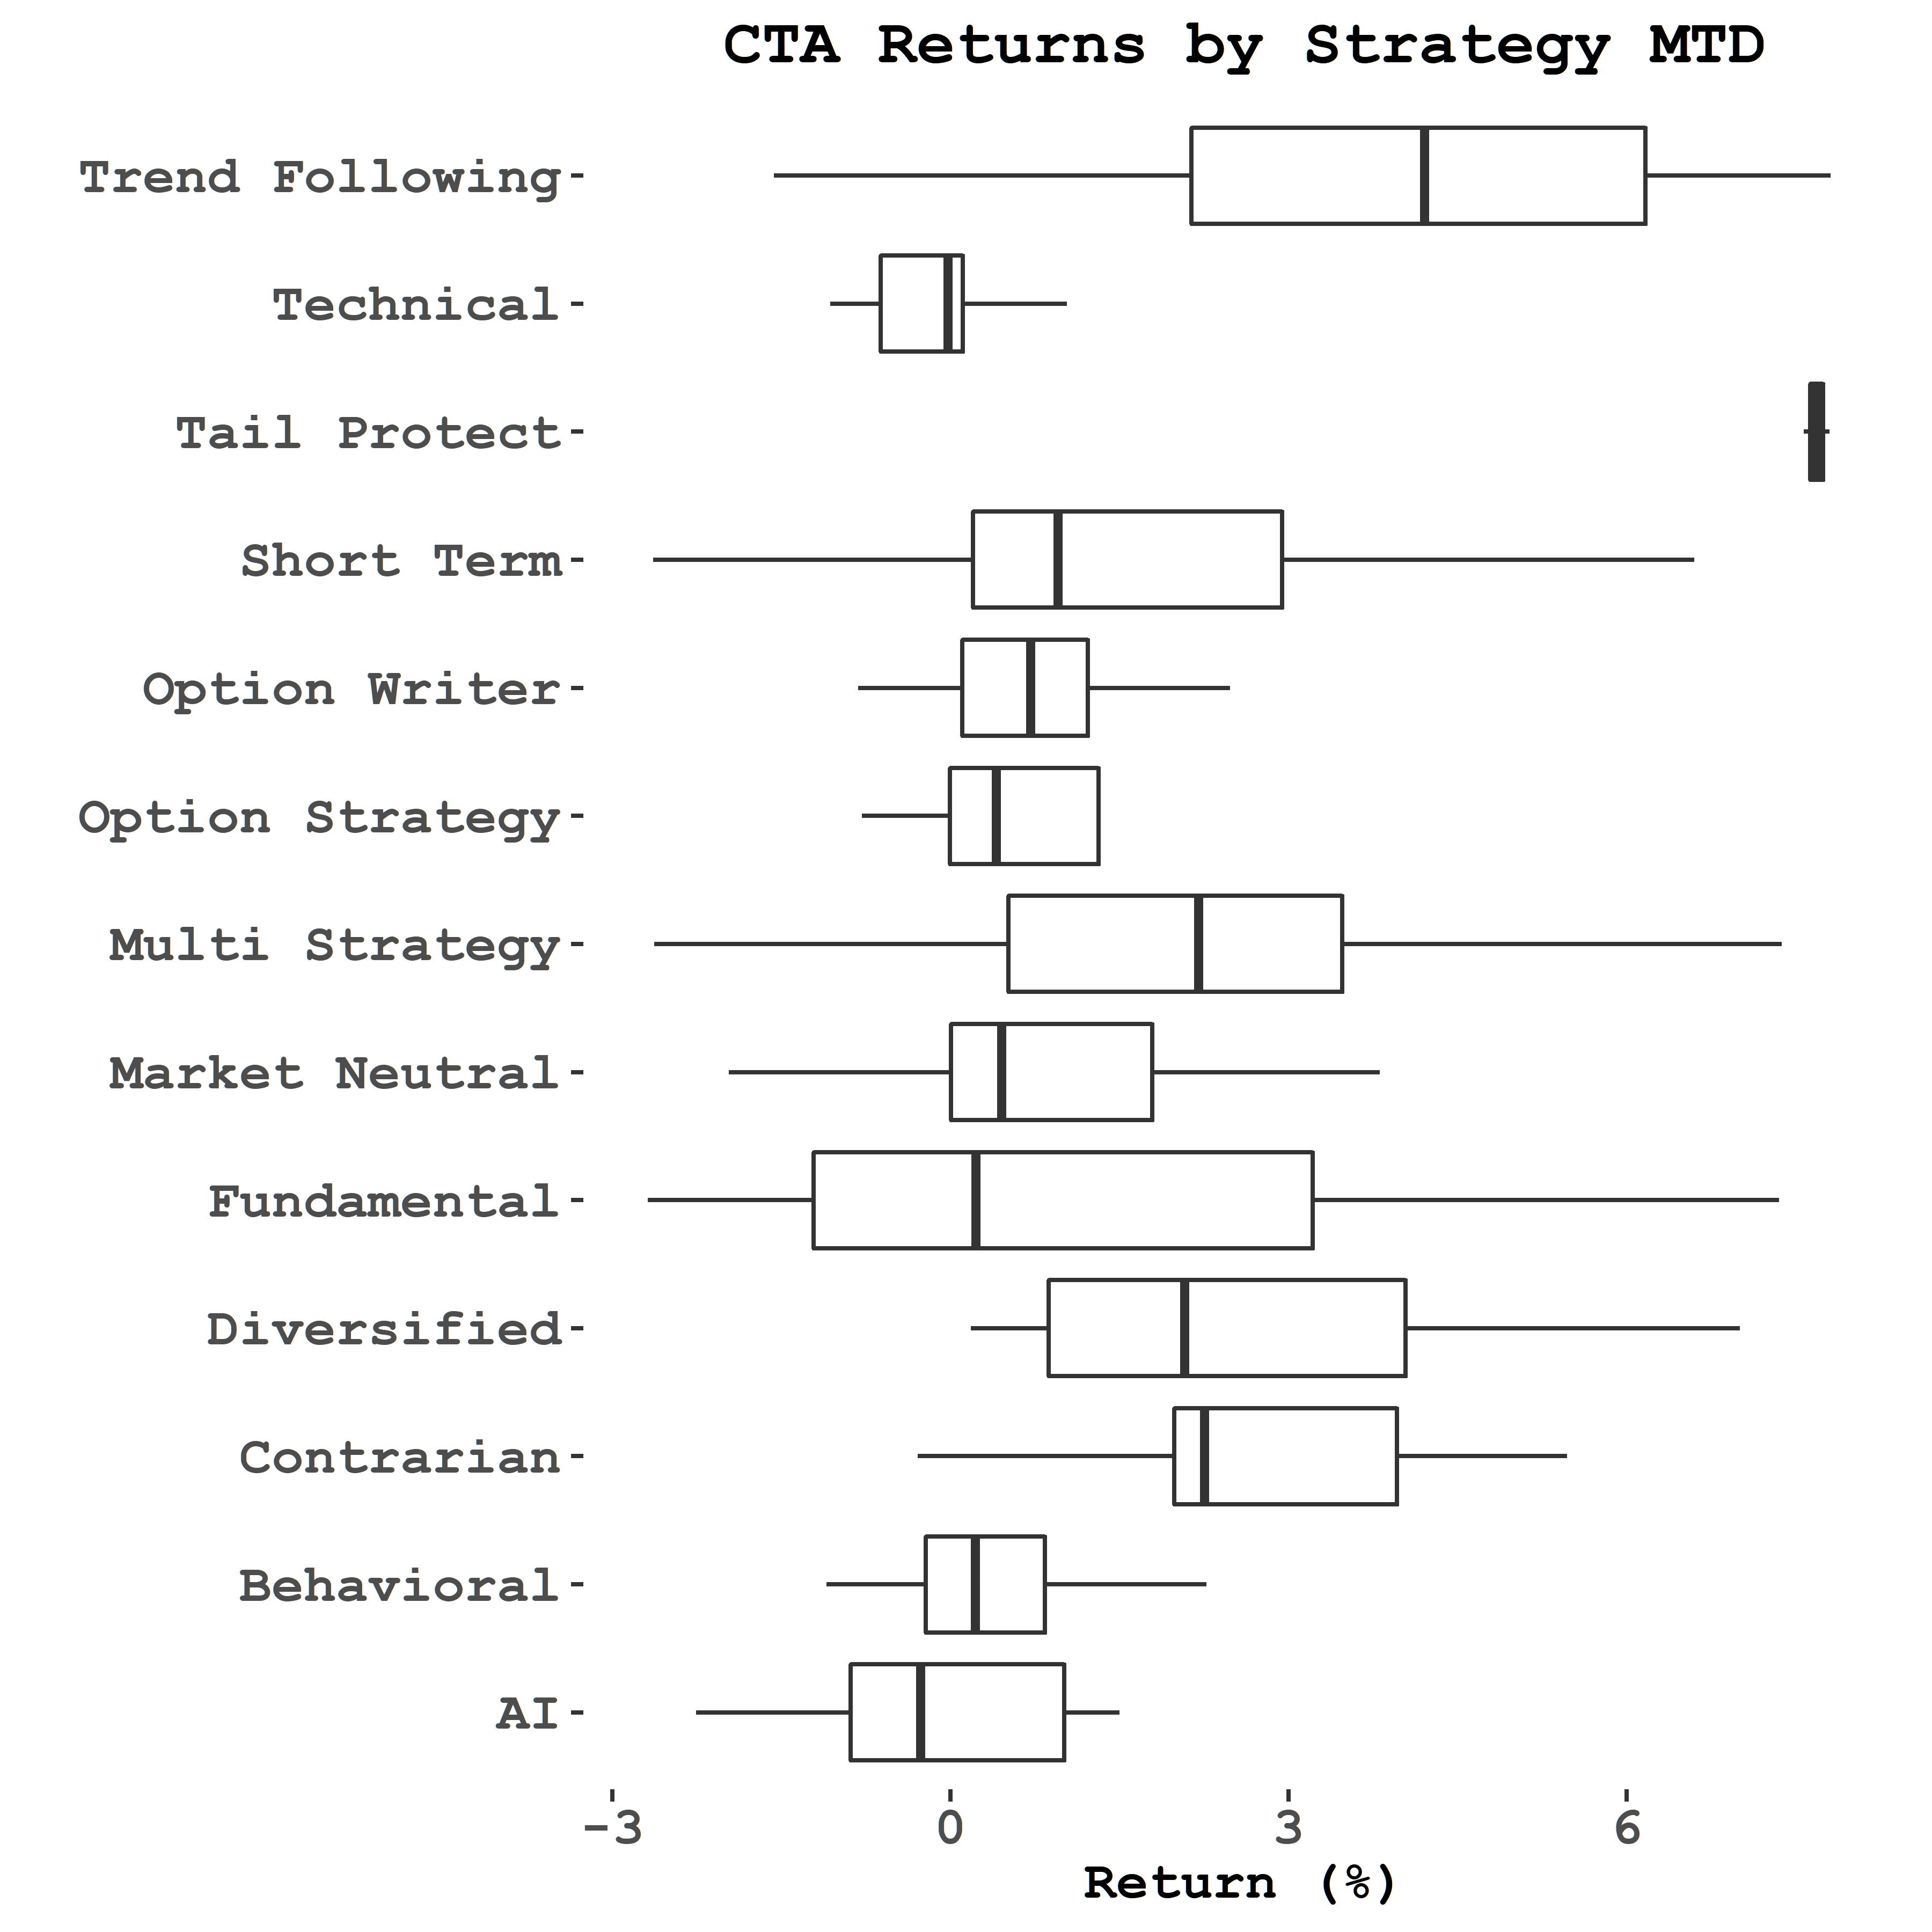 Strategy Returns – Trend Following and Diversified Funds leading the pack